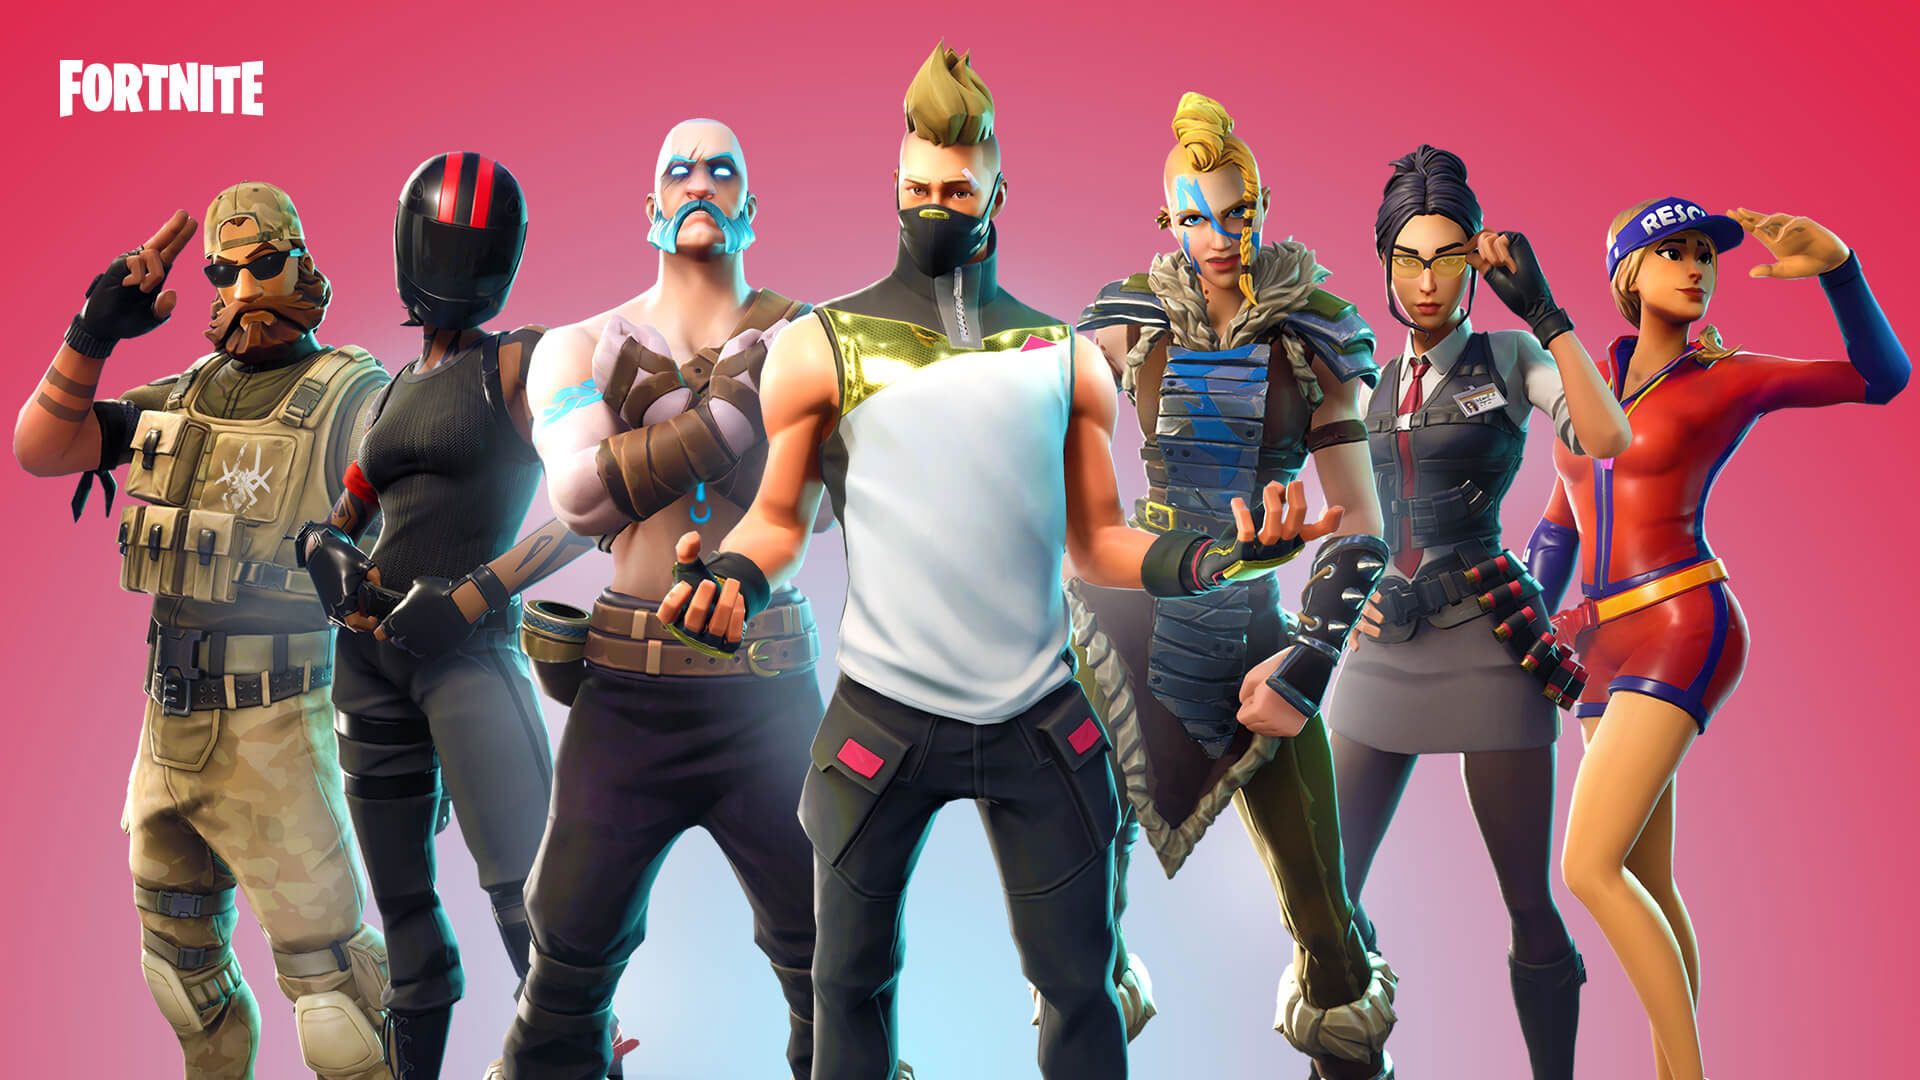 Un fin de semana con enfrentamiento en solitario en Fortnite Battle Royale